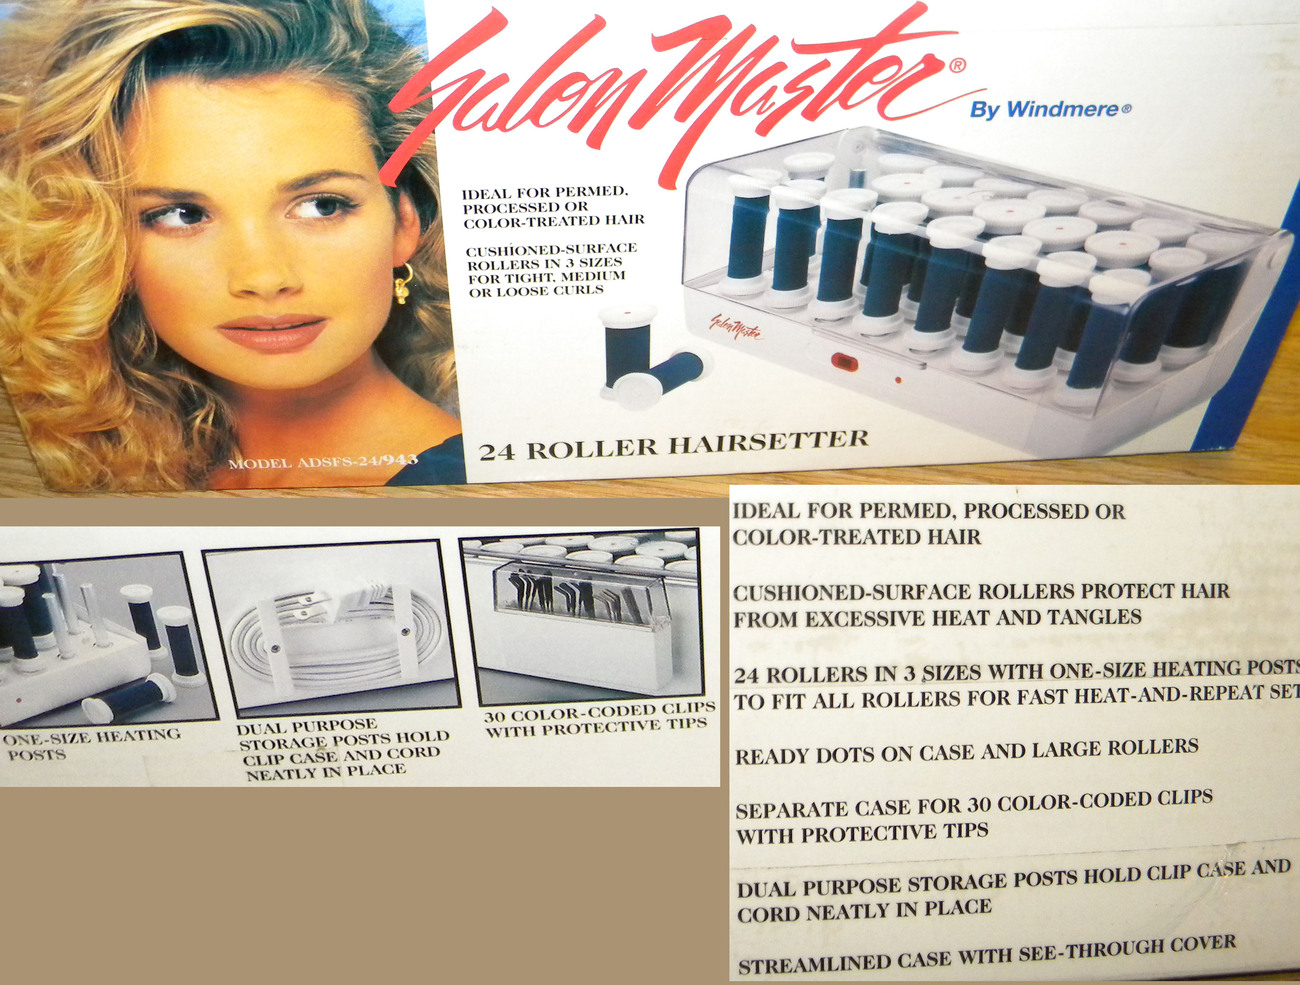 SALON MASTER Windmere 24 Hot Heated Rollers Hair setter FAST